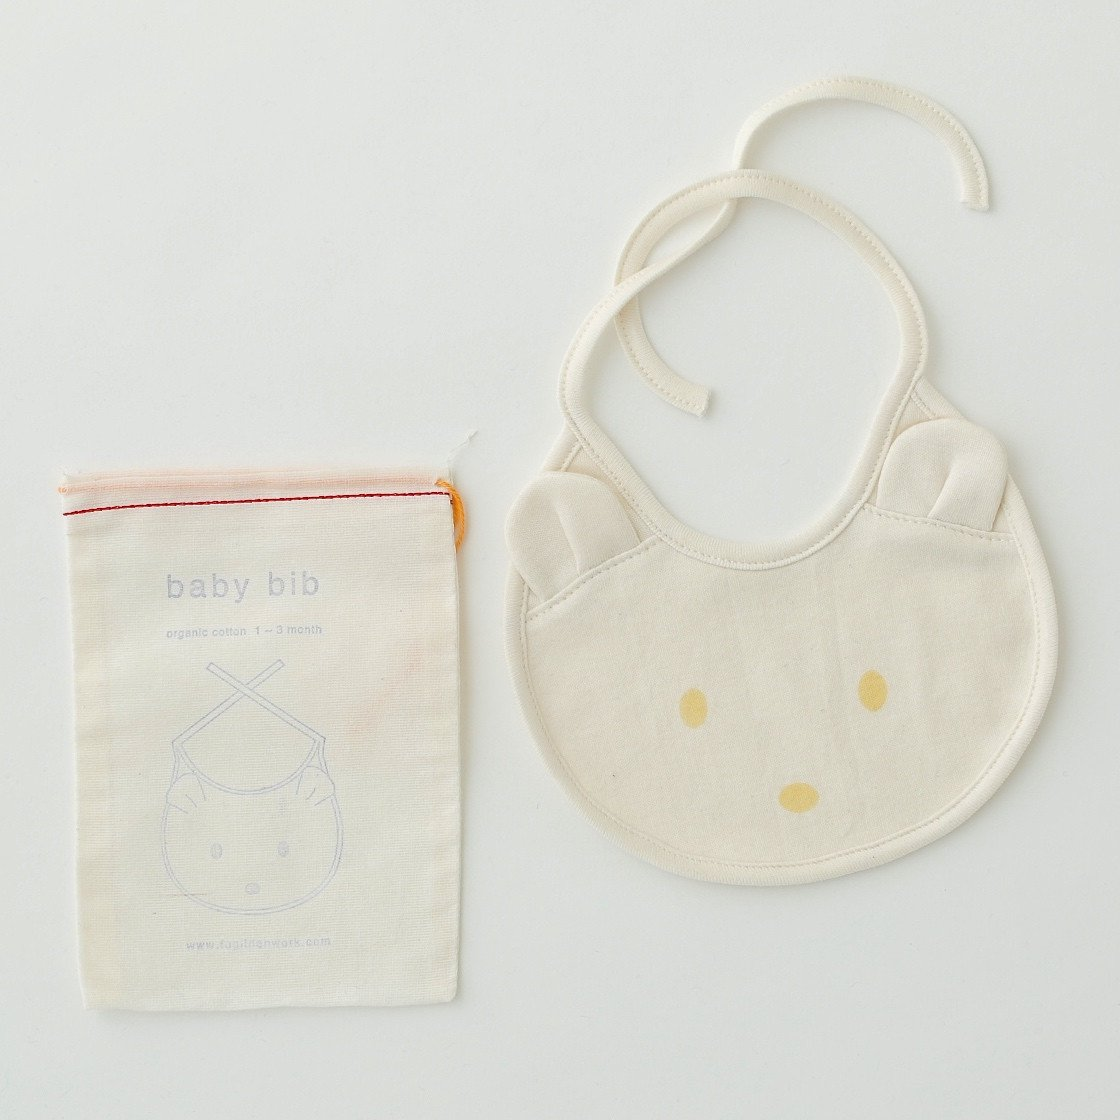 Fog Linen Work organic cotton baby bib with bear face and ears in white with cotton drawstring bag